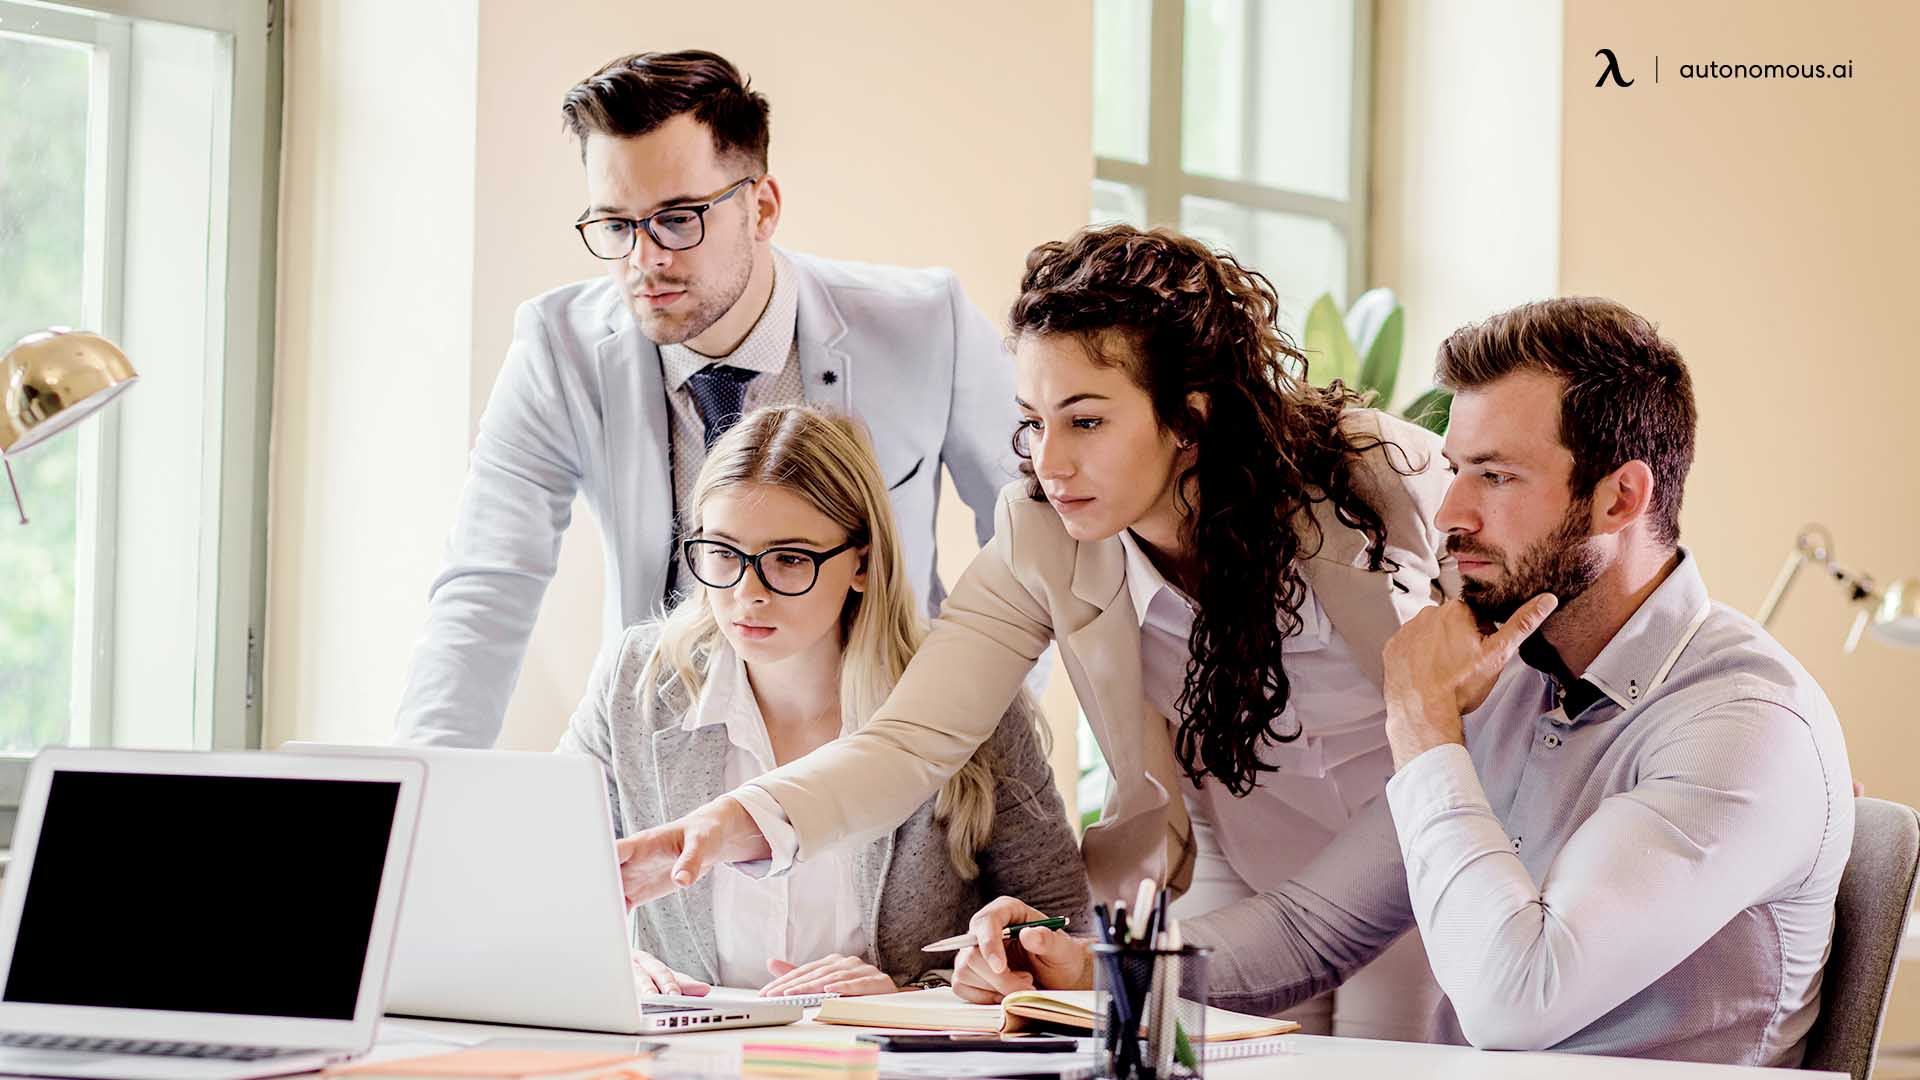 How Do Managers Manage A Hybrid Workforce